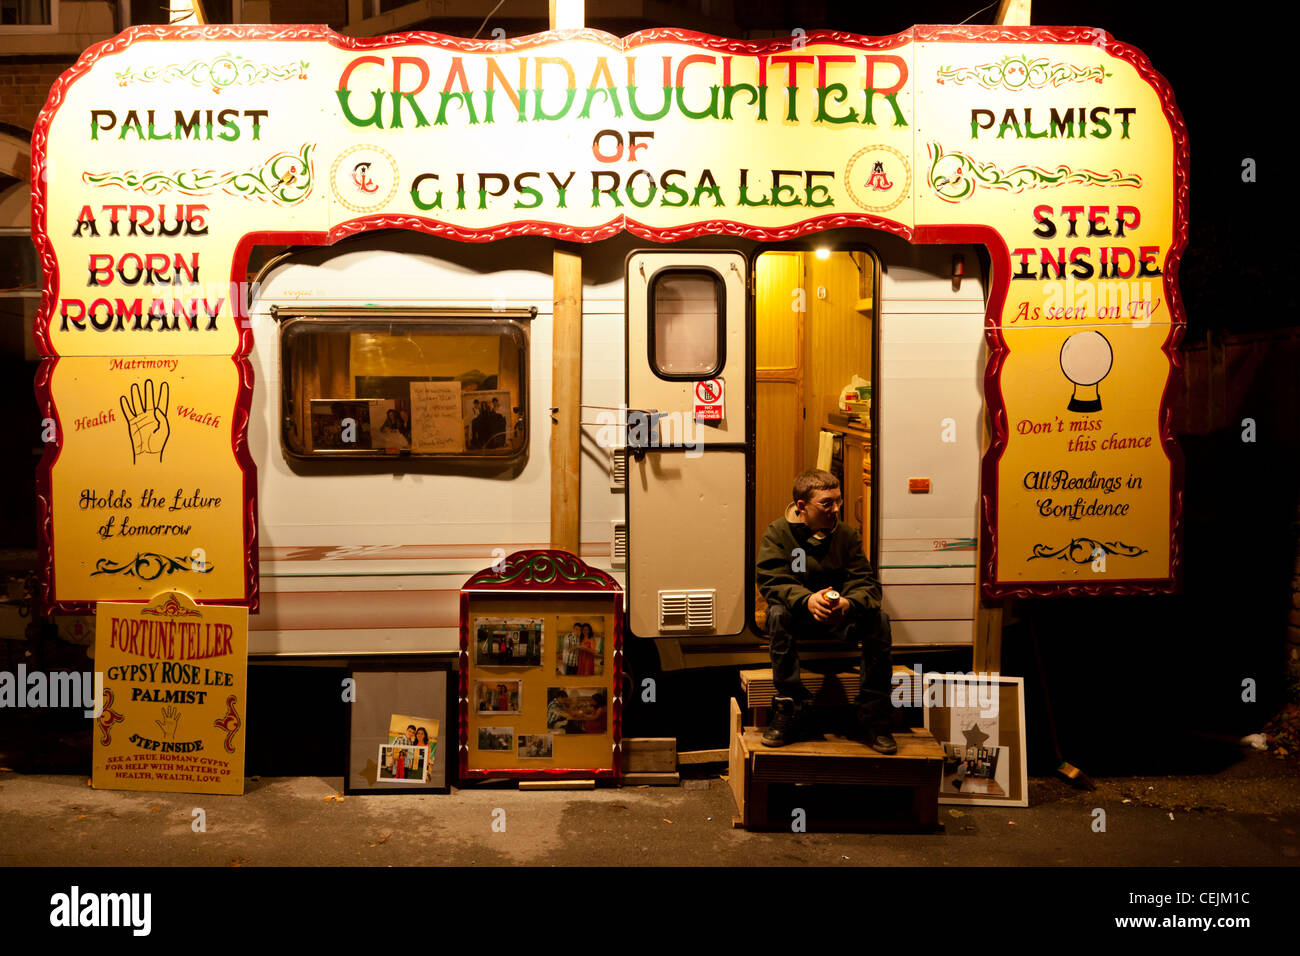 A boy sits on the steps of fortune teller's caravan at Goose Fair in Nottingham, England, UK - Stock Image